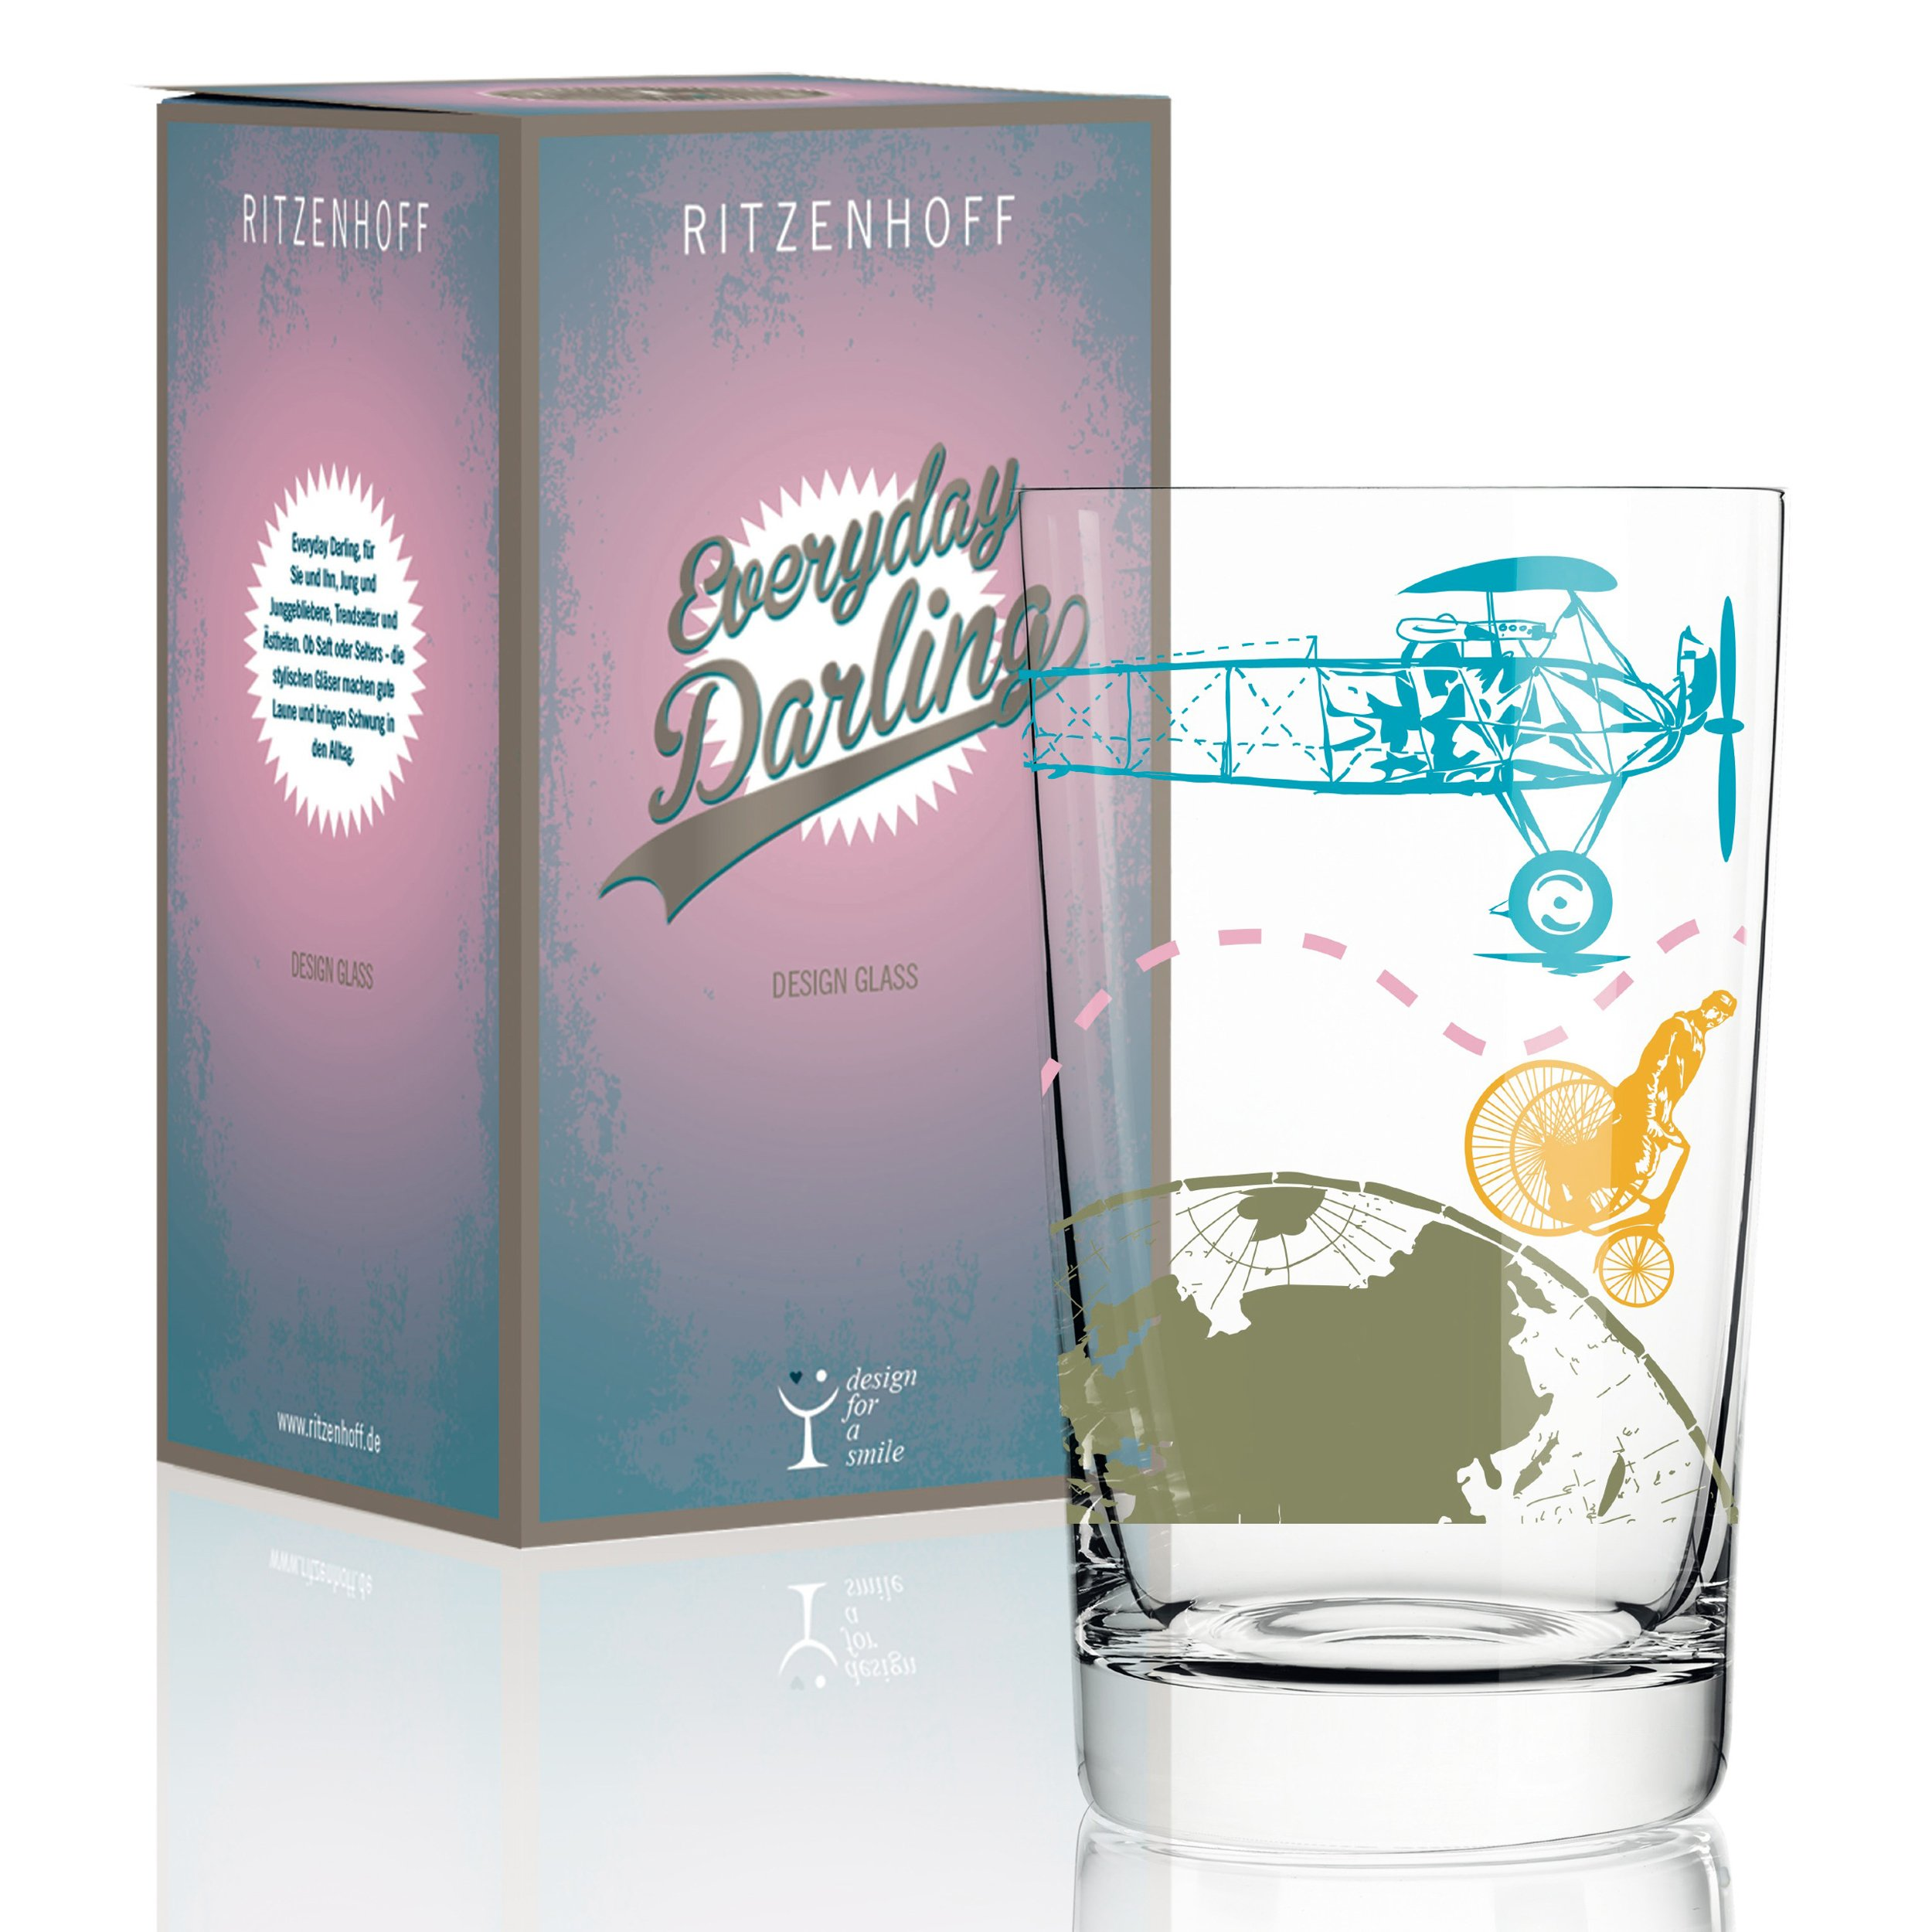 RITZENHOFF Everyday Darling Soft Drink Glass by Pedrazzini/Perilli 300ml Crystal Glass with Trendy Decorations